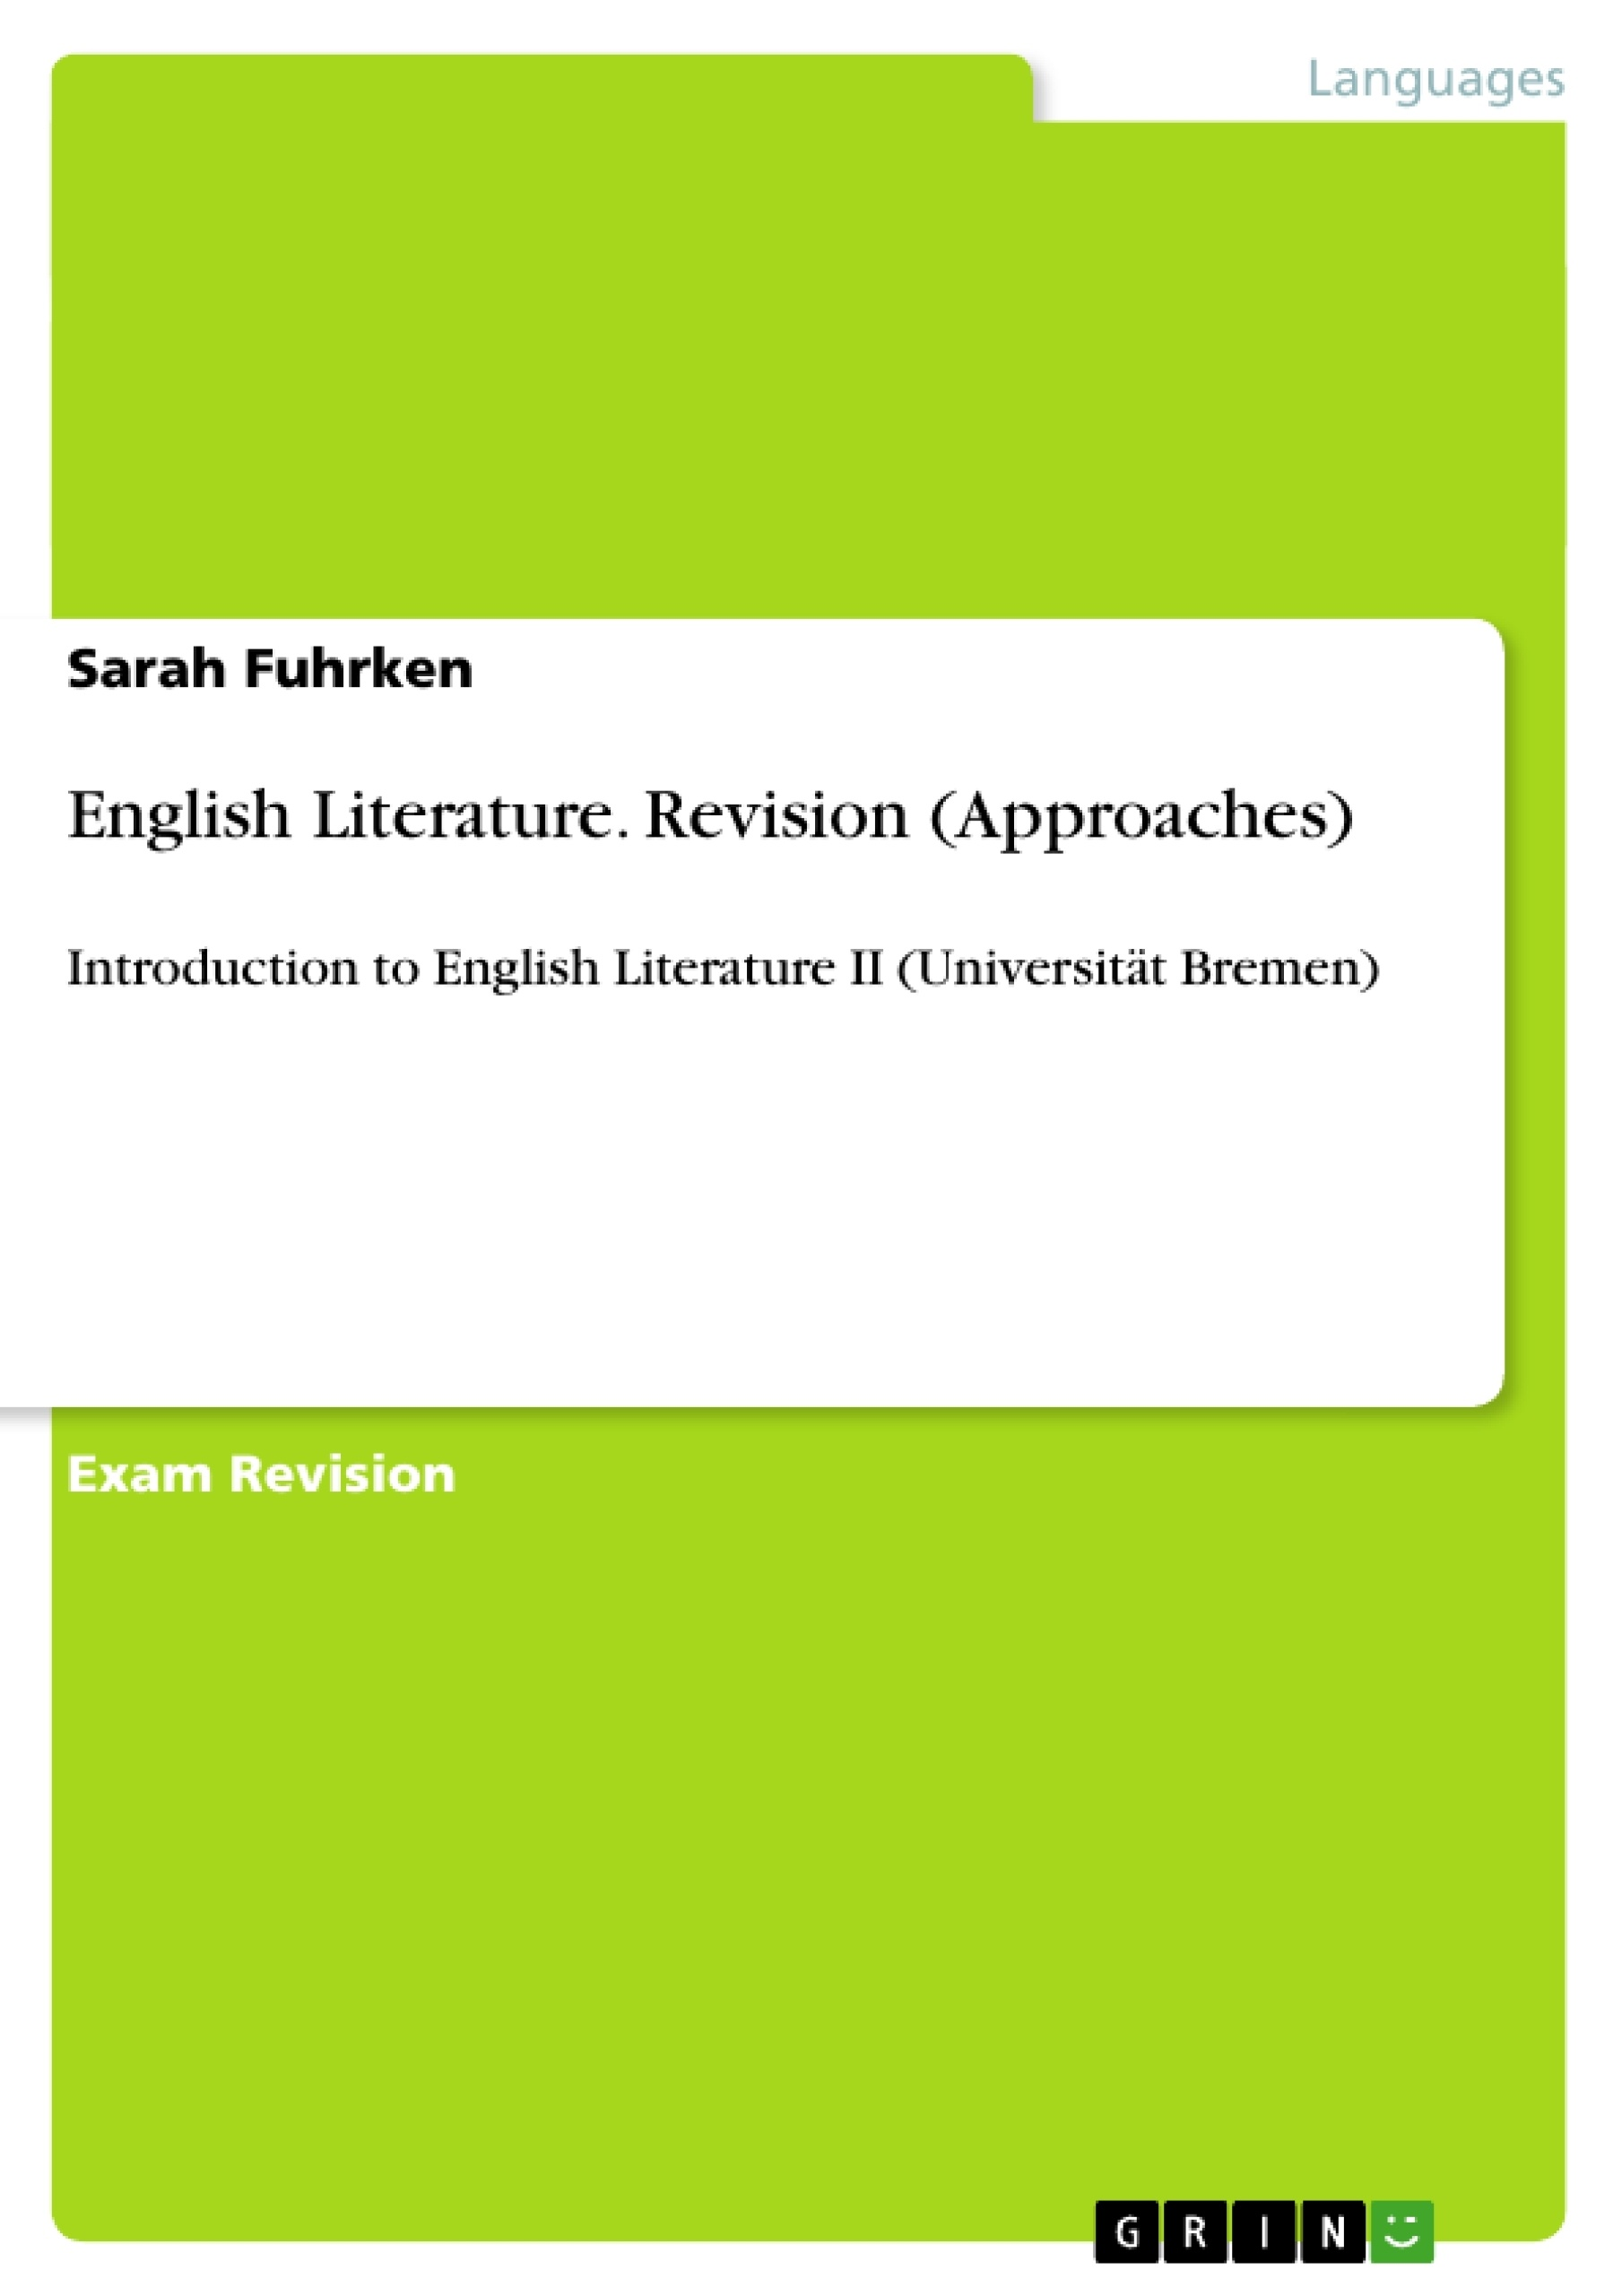 Essays and studies in english language and literature